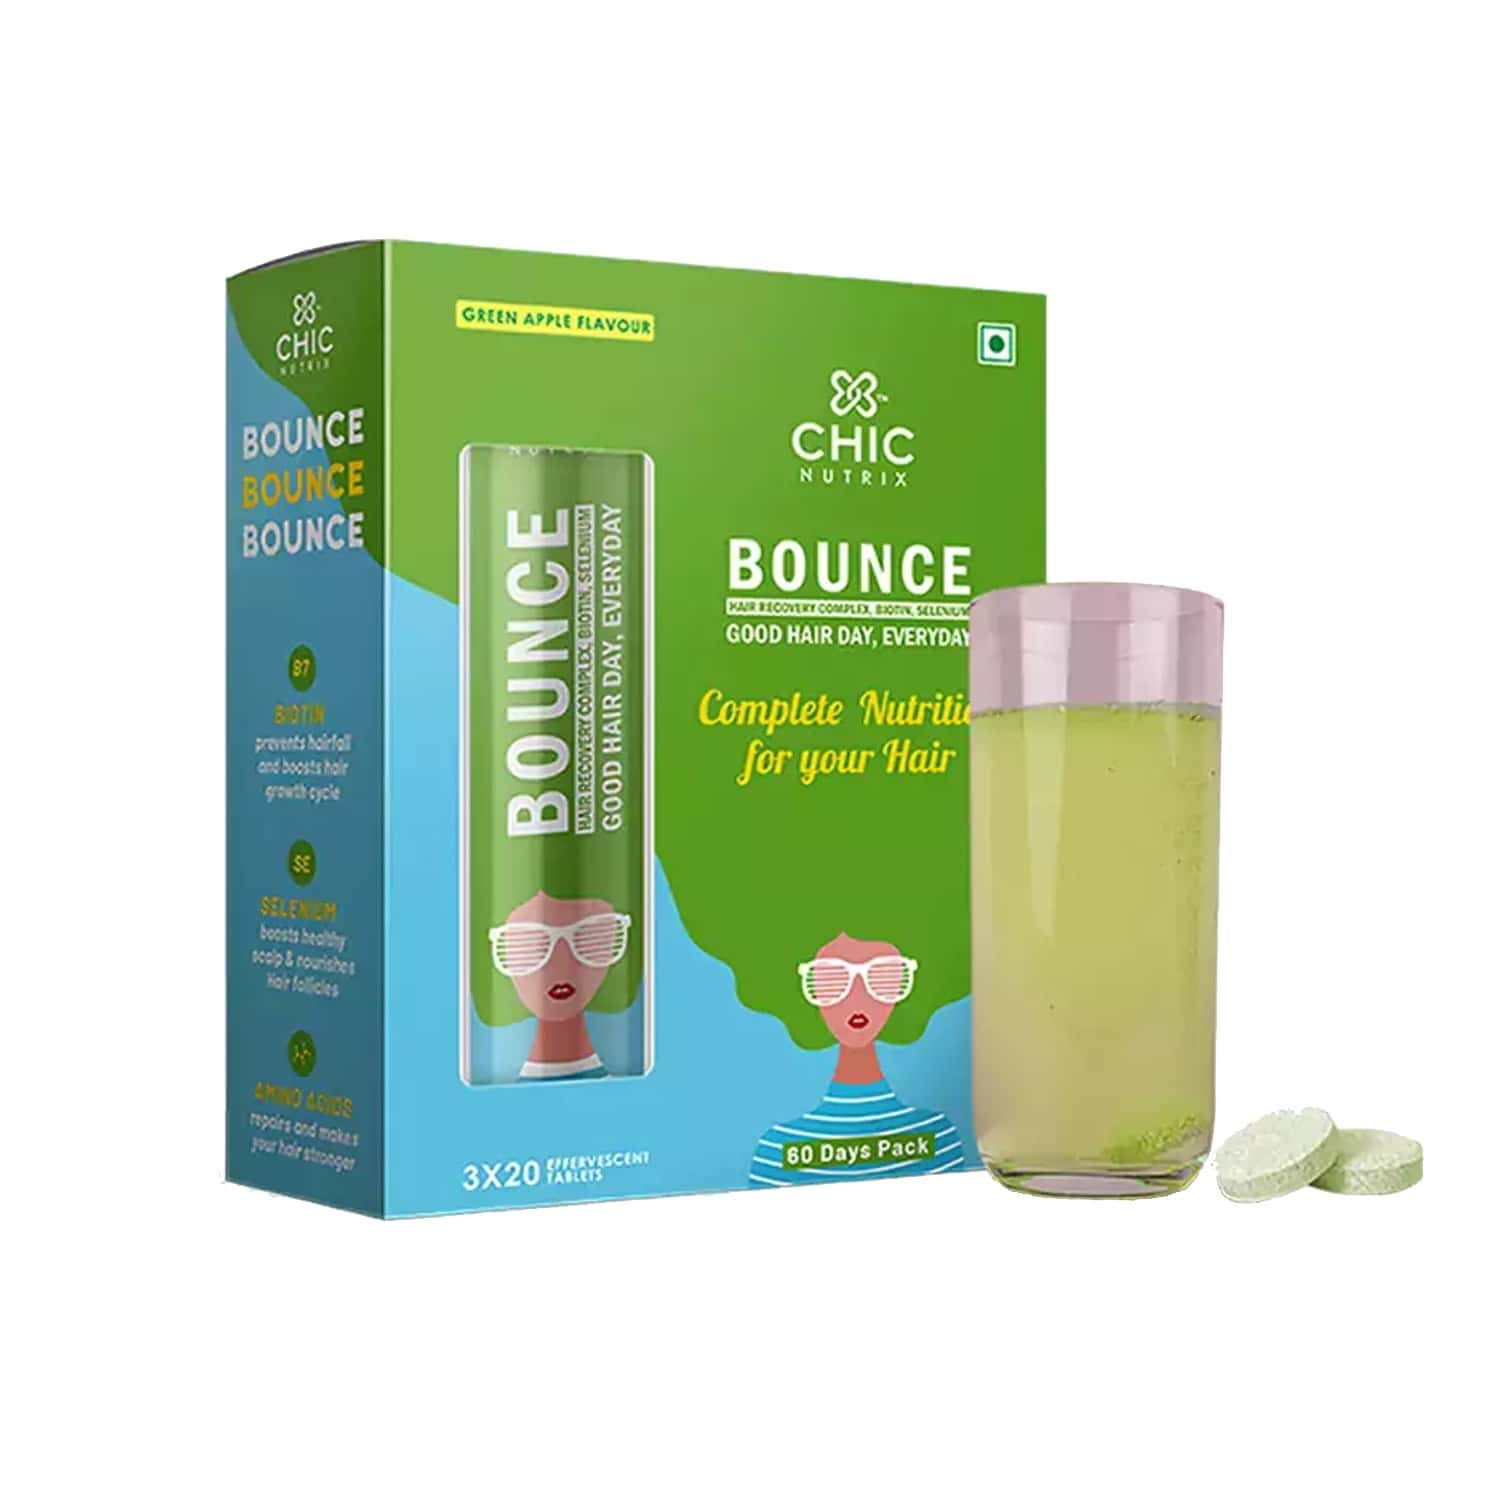 Chicnutrix Bounce - Hair Recovery Complex, Biotin, Selenium For A Good Hair Day, Everyday - 60 Effervescent Tablets - Green Apple Flavour